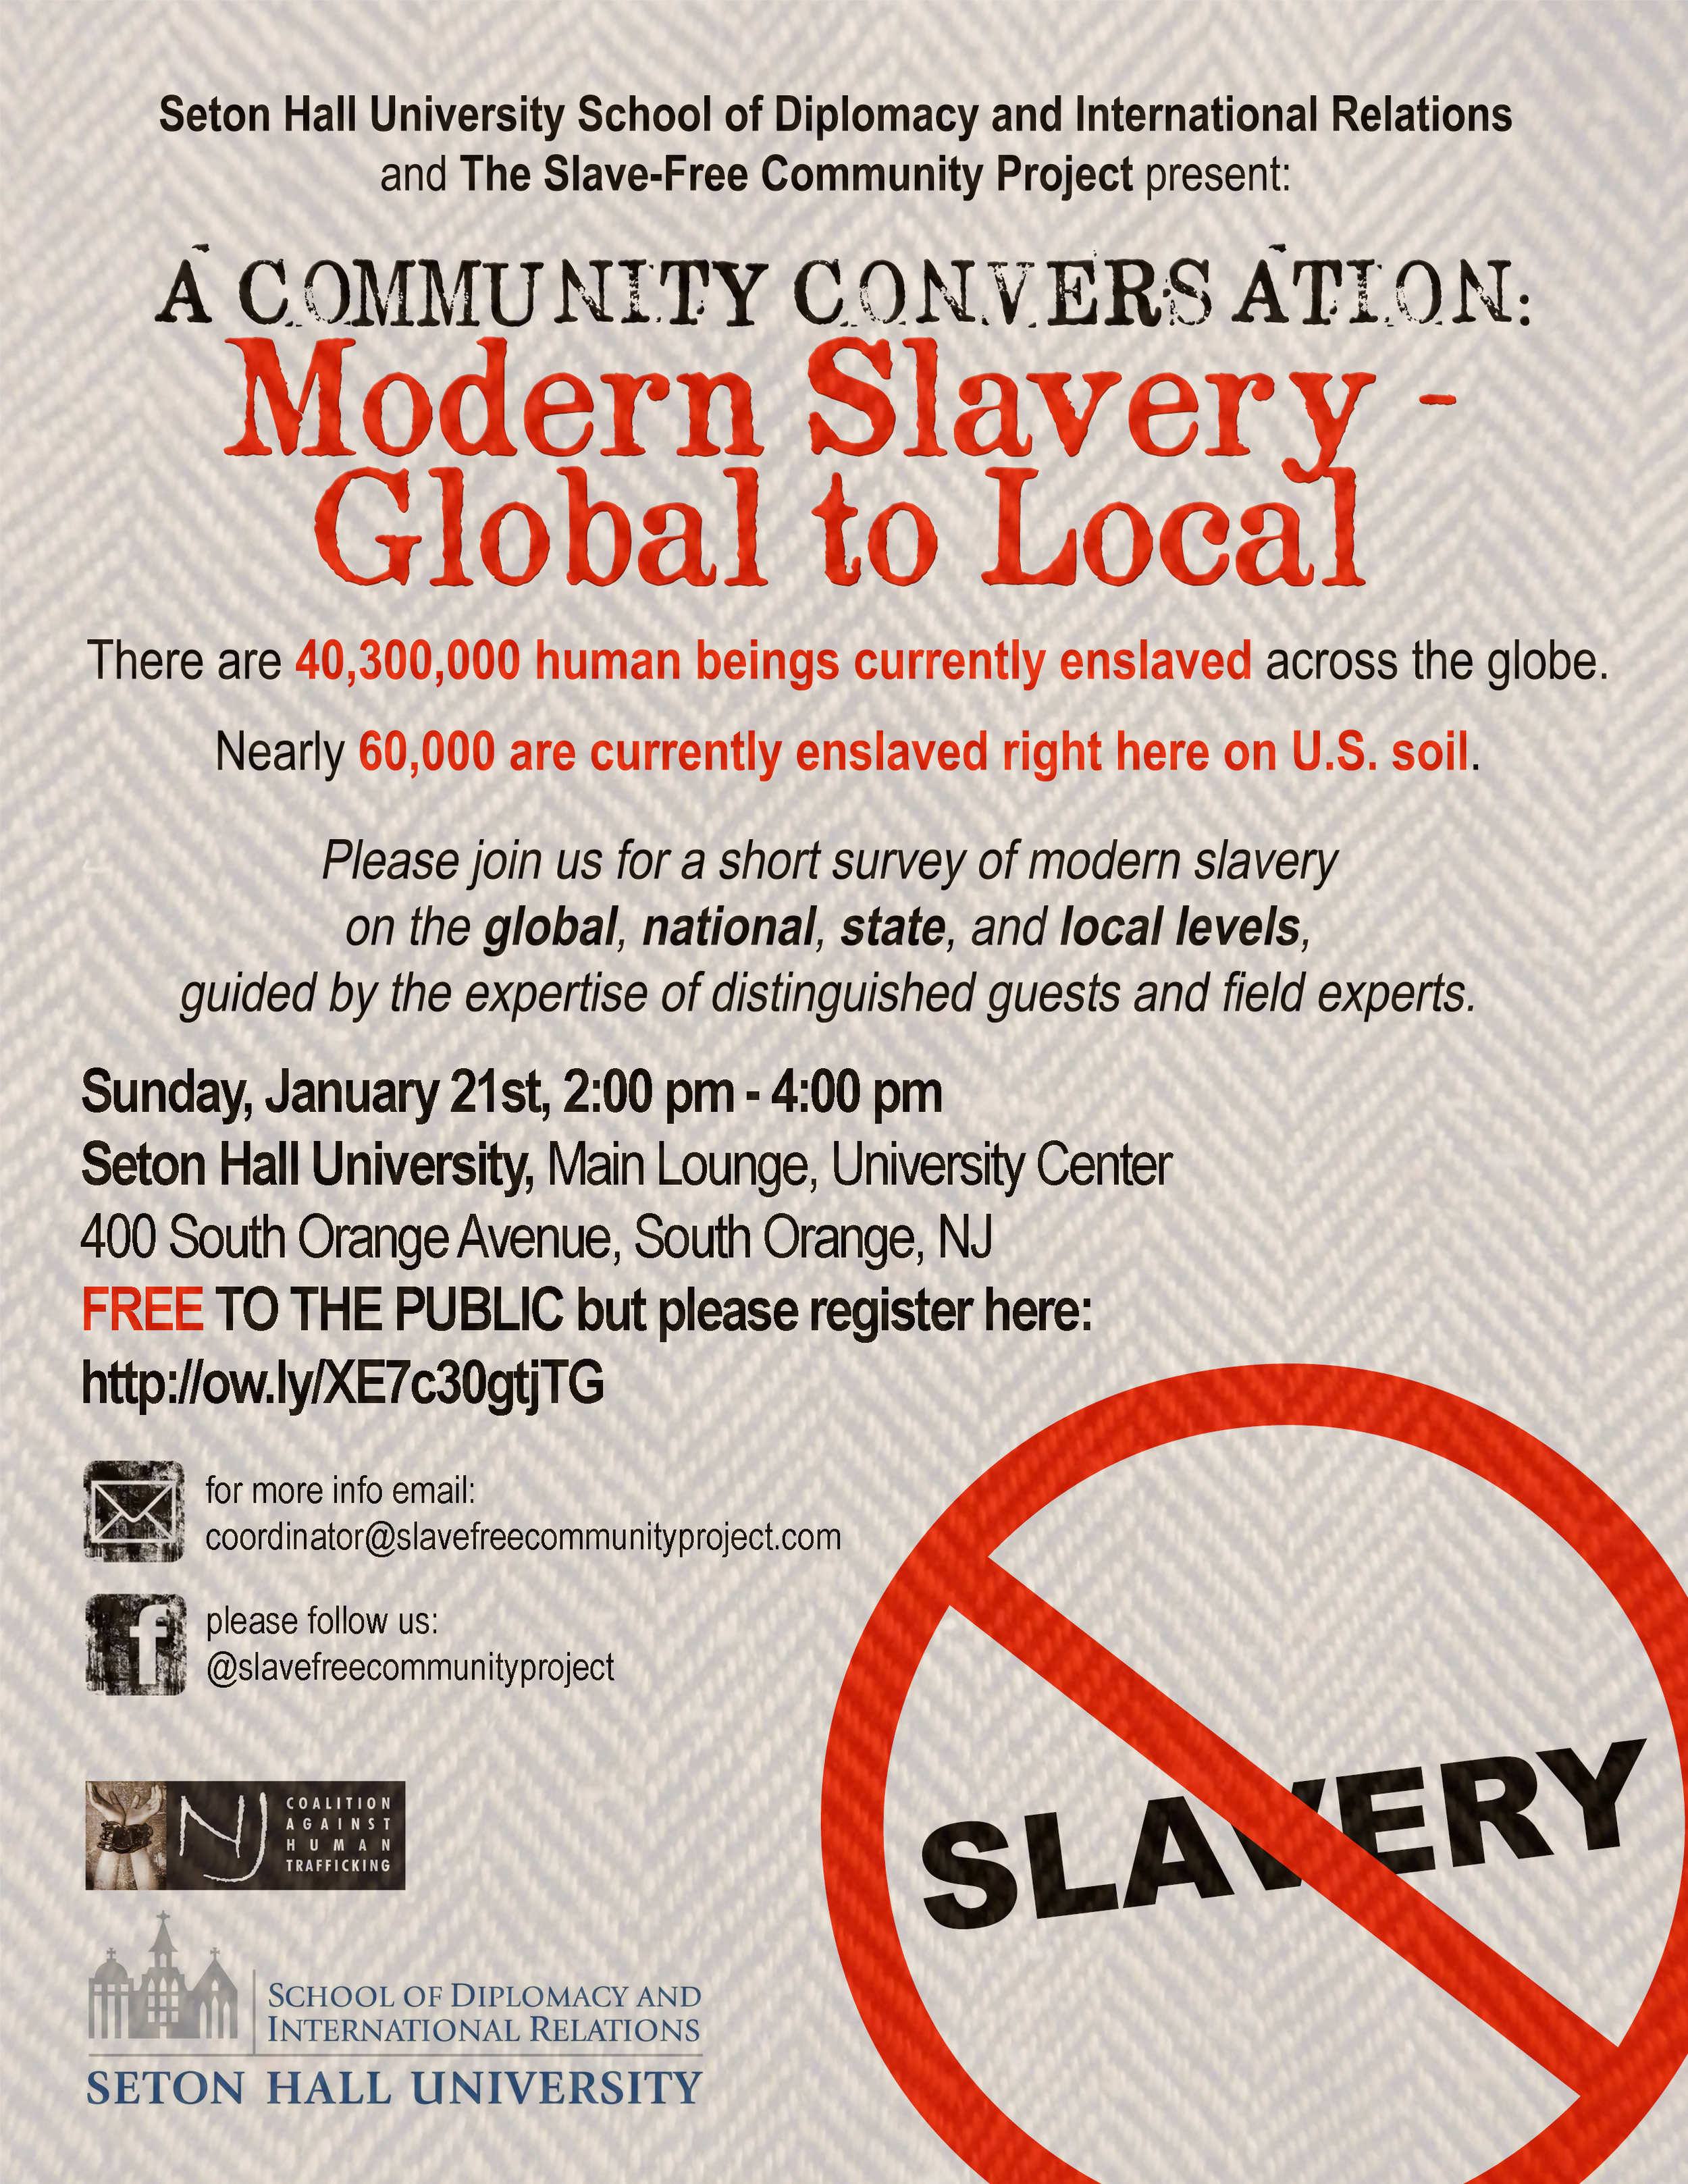 Modern Slavery Global to Local_EventBrite4.jpg